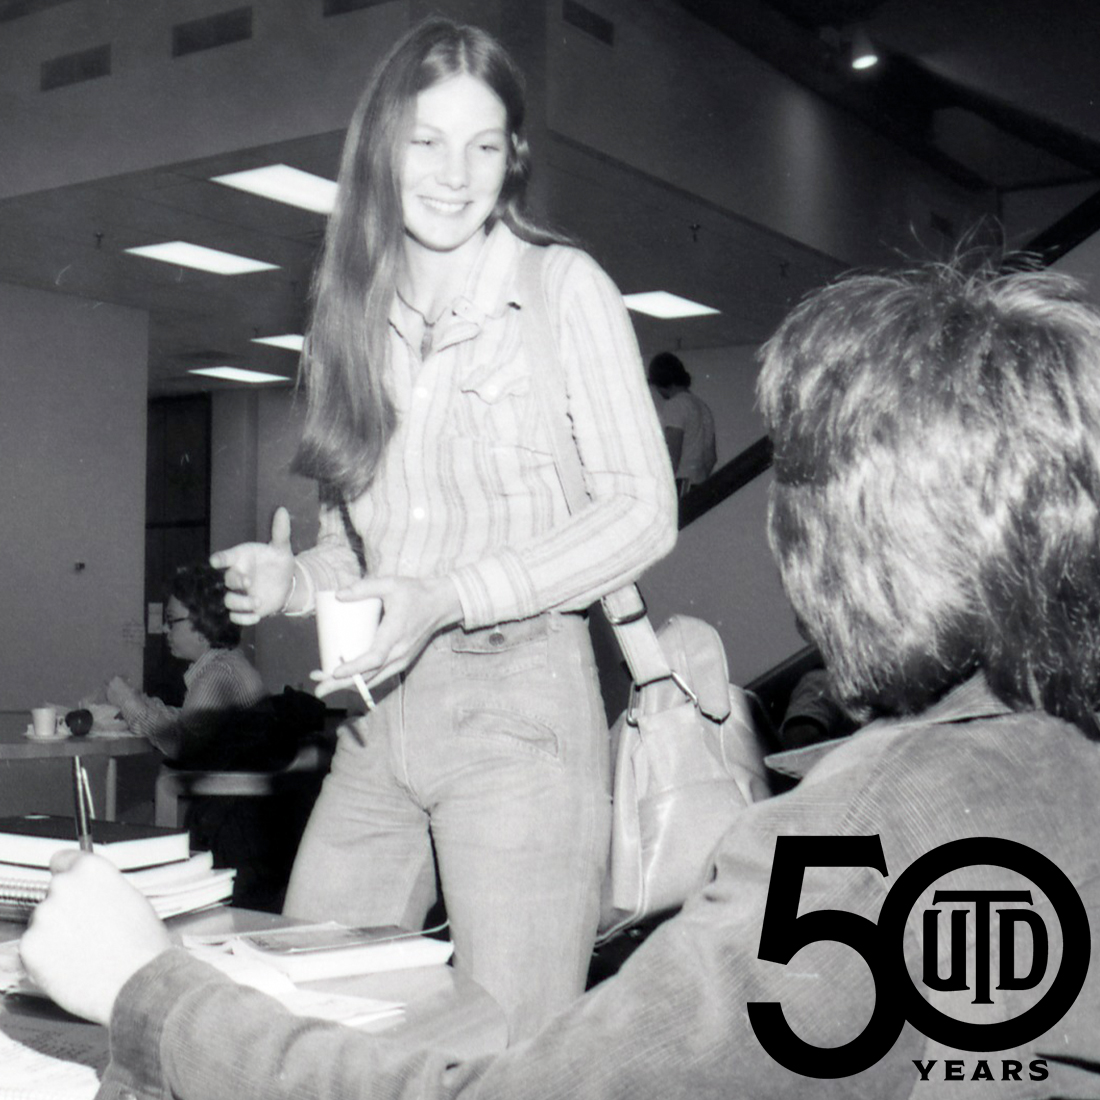 Old photo of students in McDermott Library cafeteria